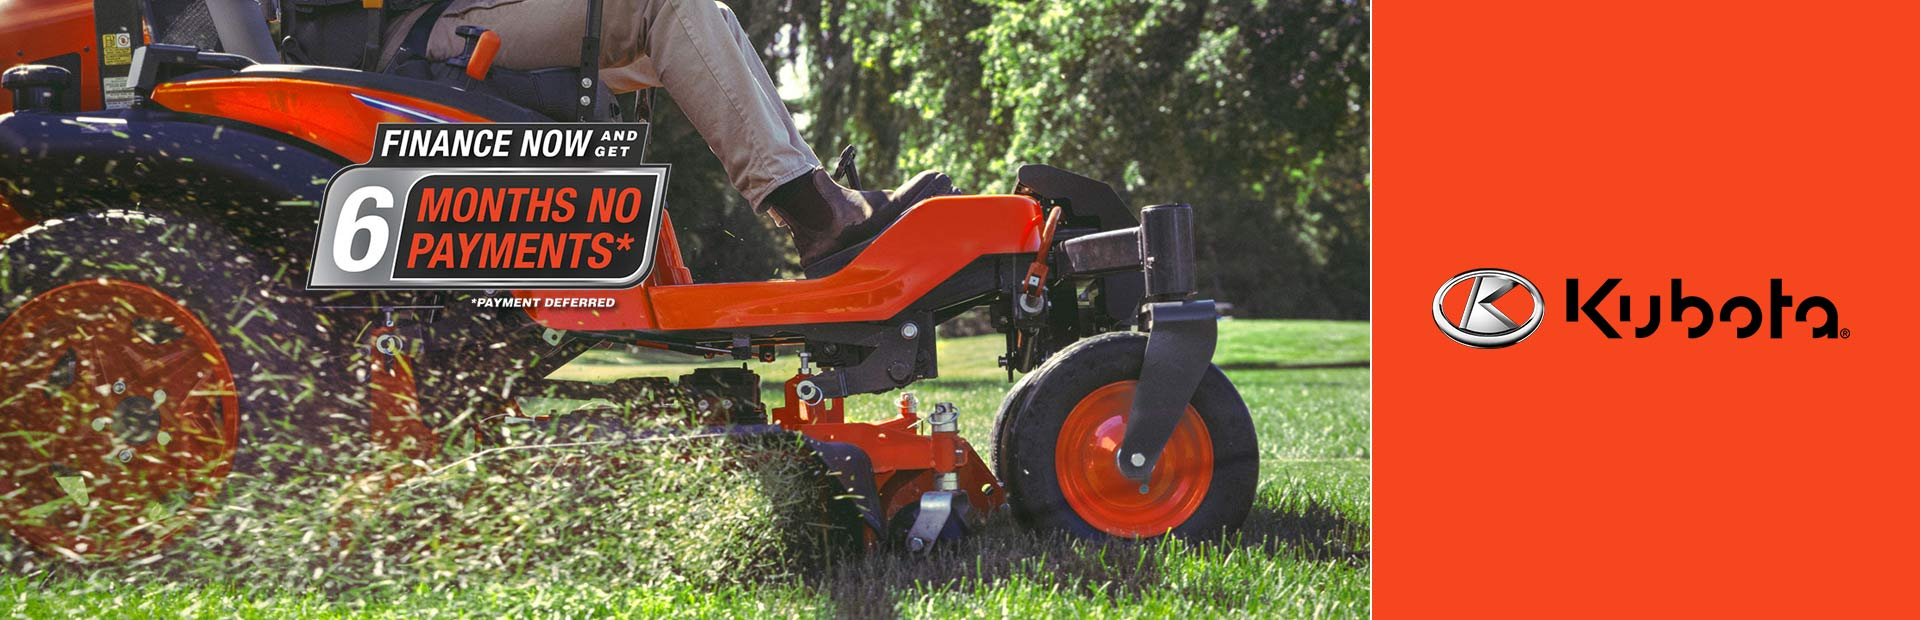 Kubota: Finance Now and Get 6 Months No Payments